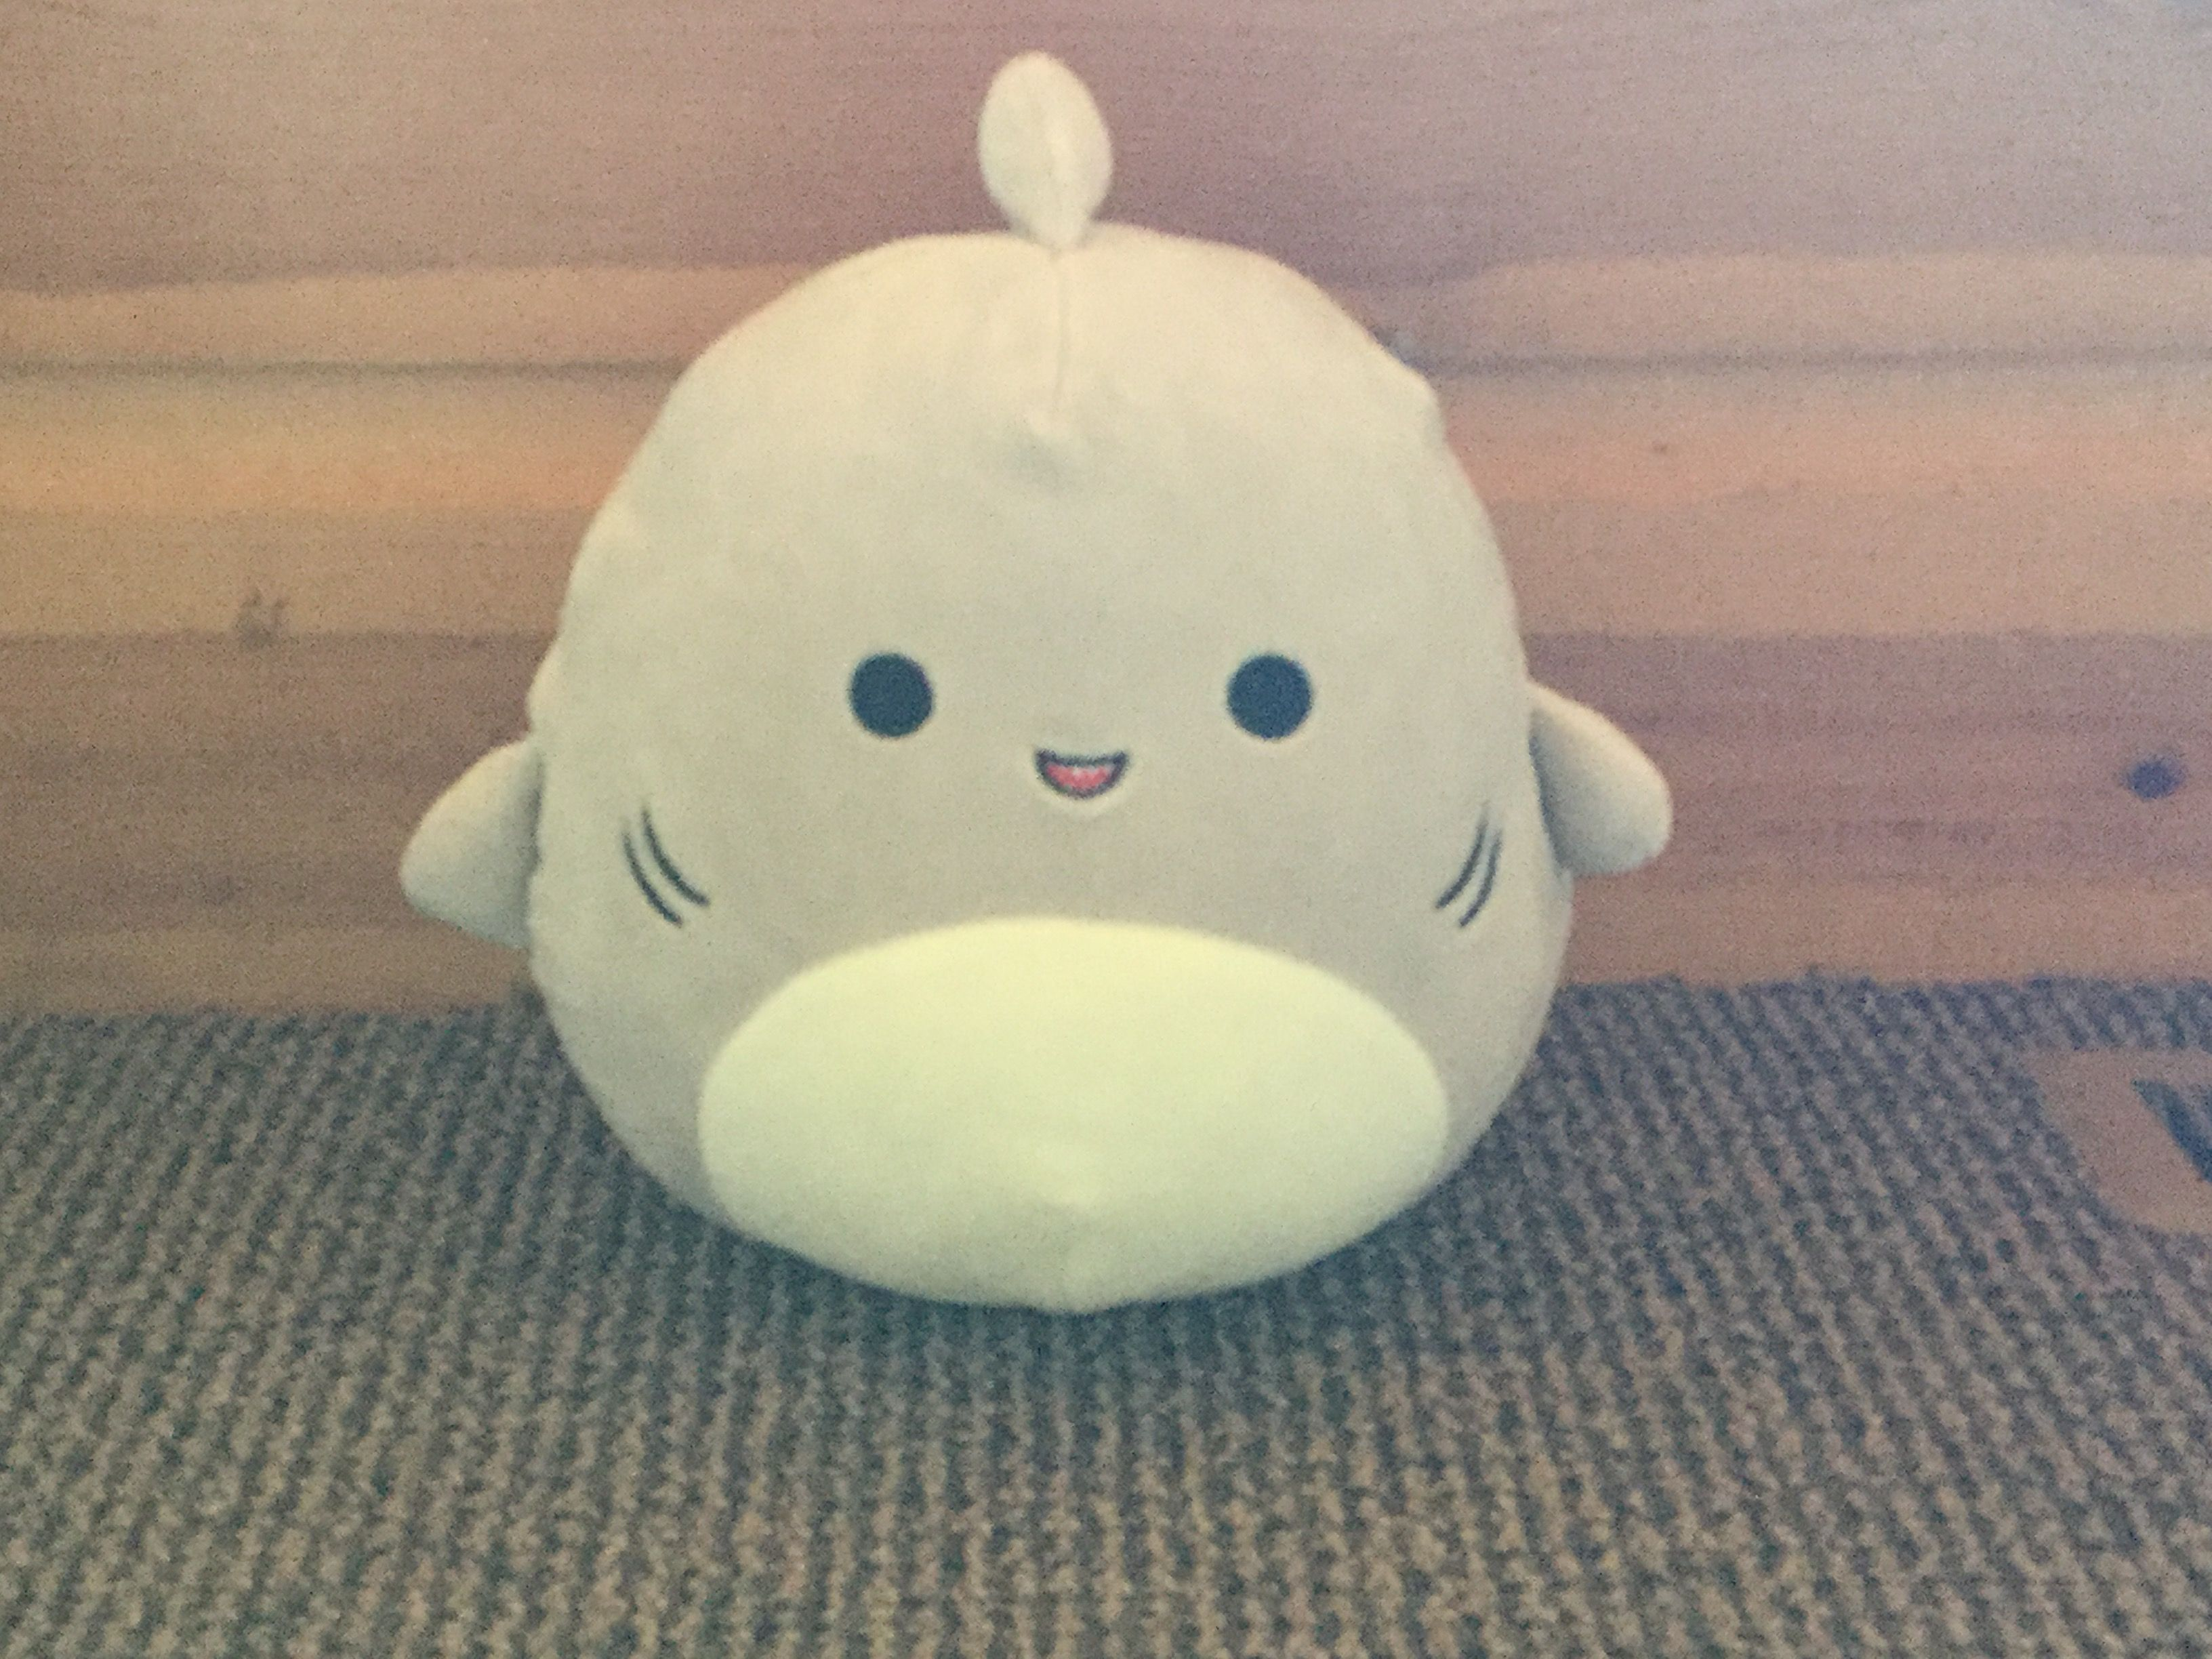 Pin By Little Red On Squishmallows In 2020 Kawaii Plushies Hello Kitty Plushies